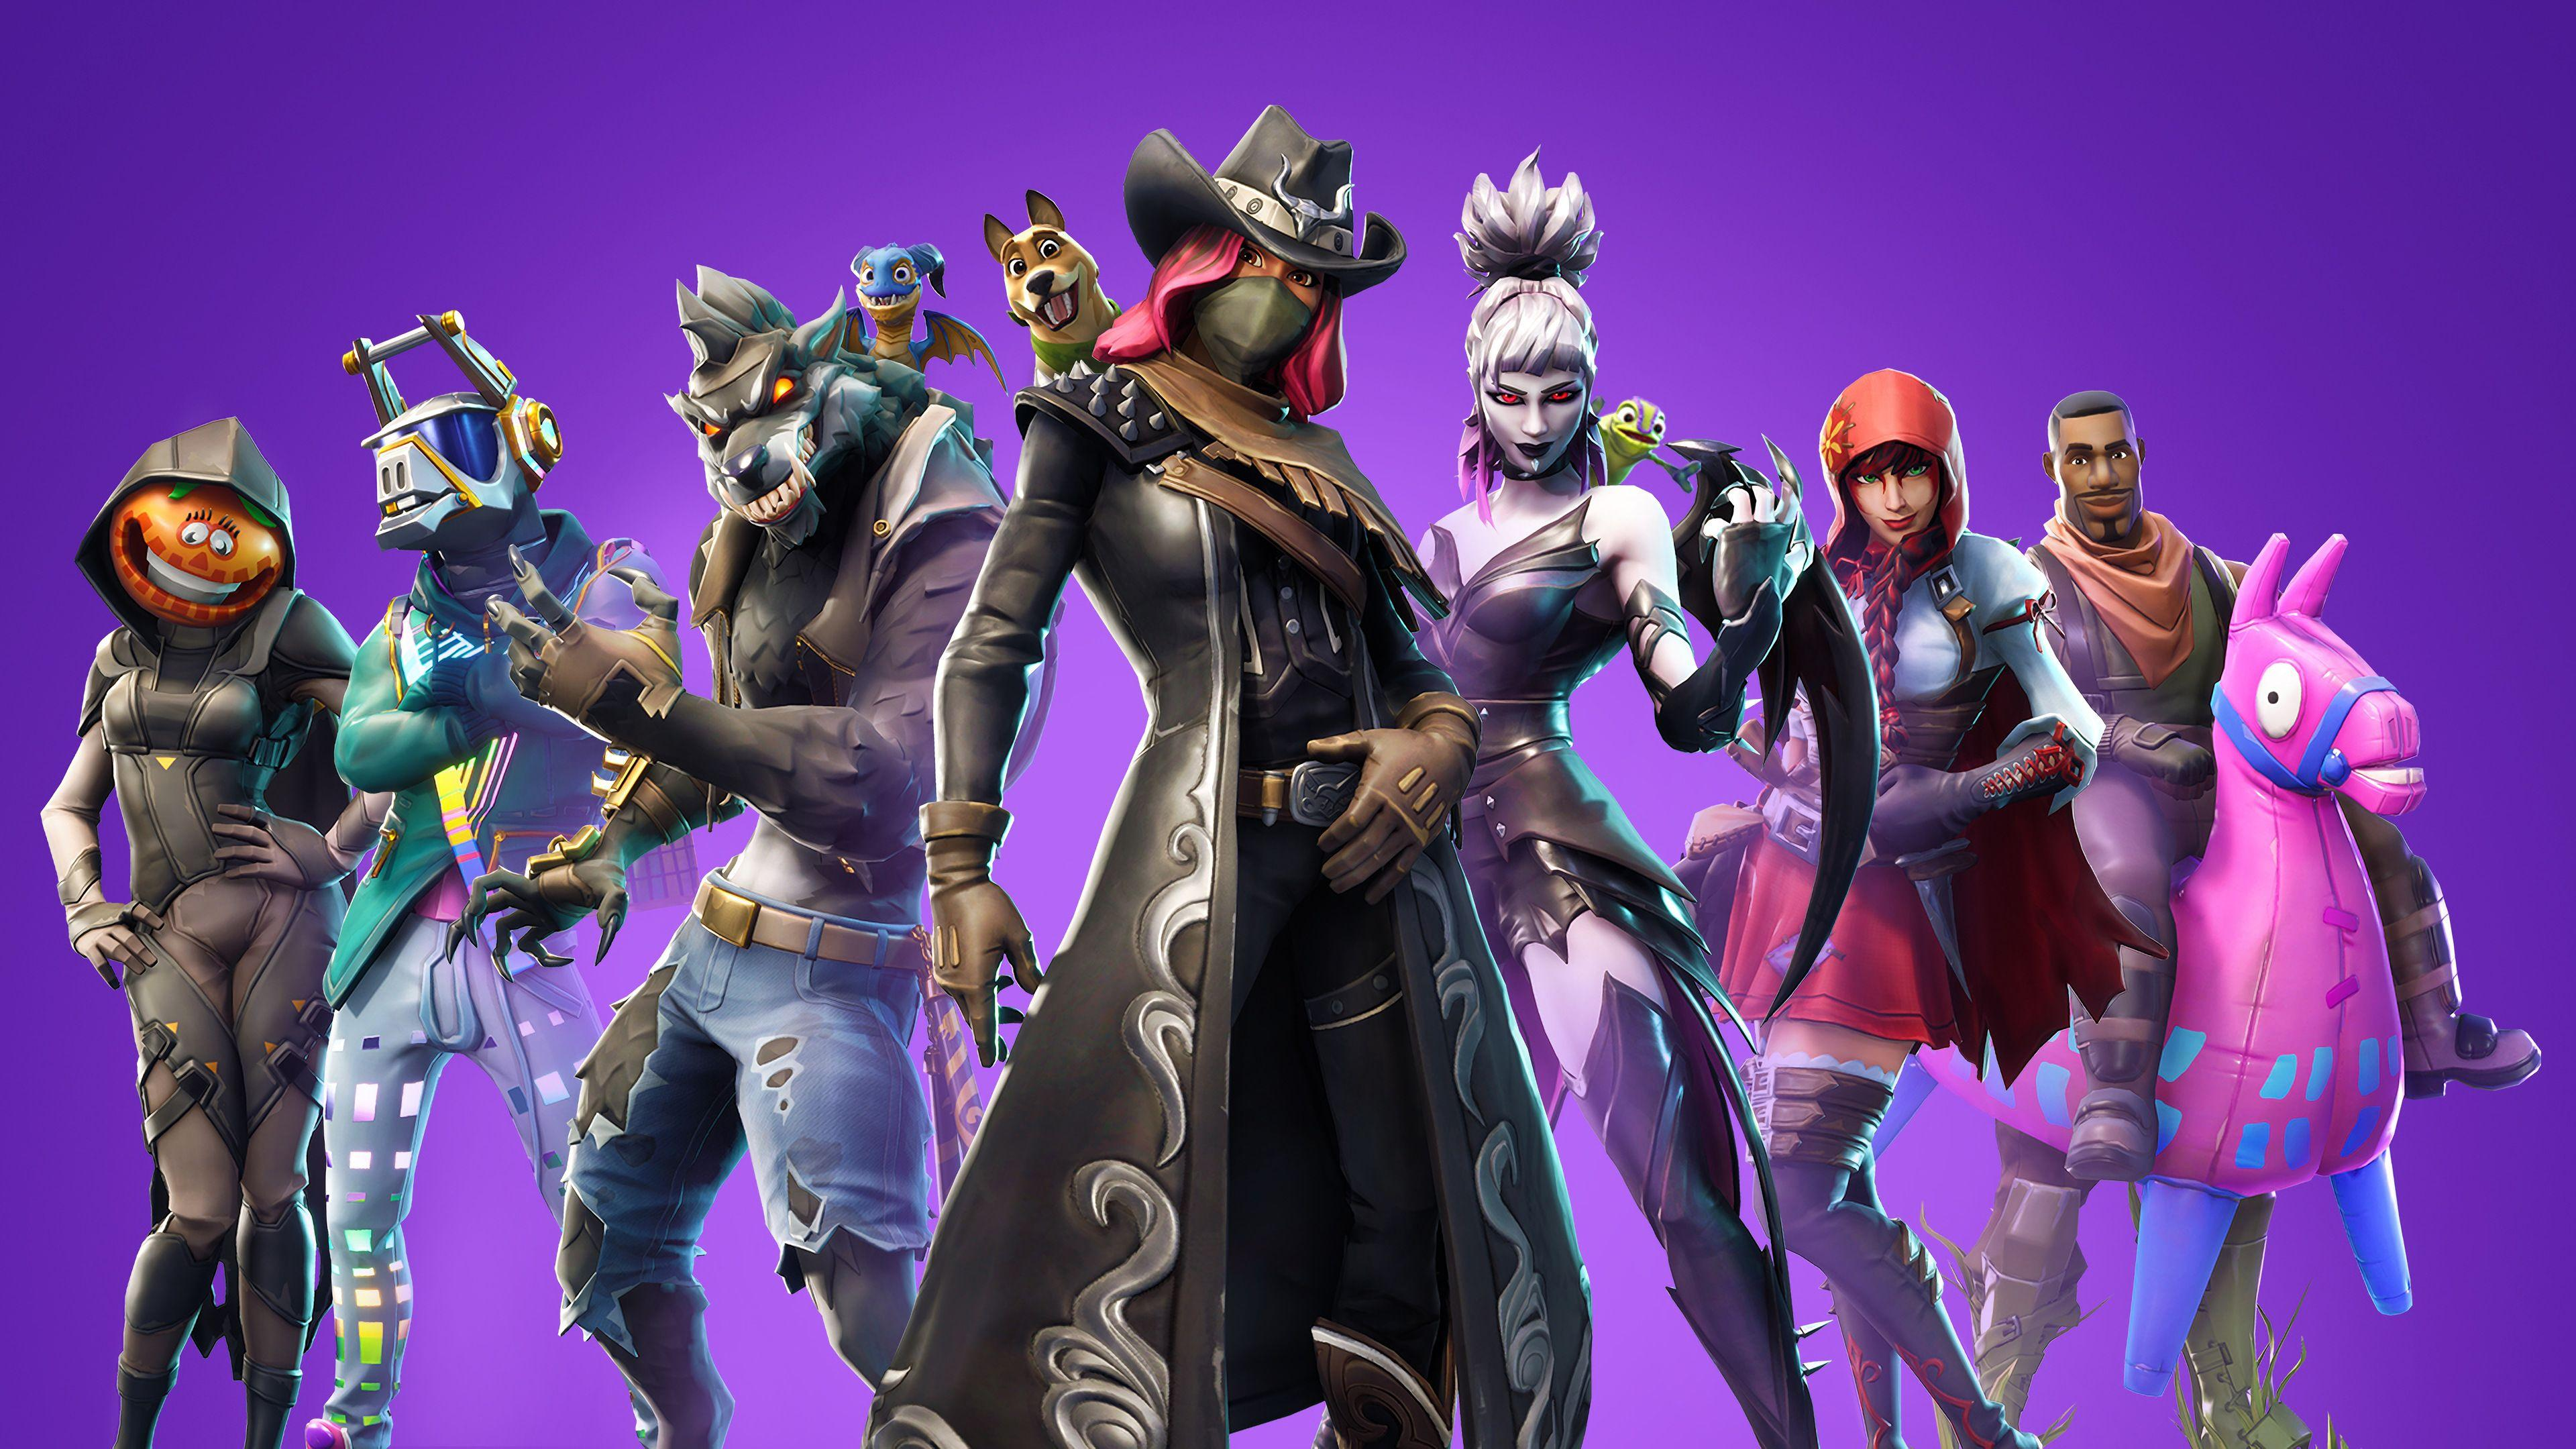 Fortnite Season 6 Wallpaper | HD Wallpapers Mafia